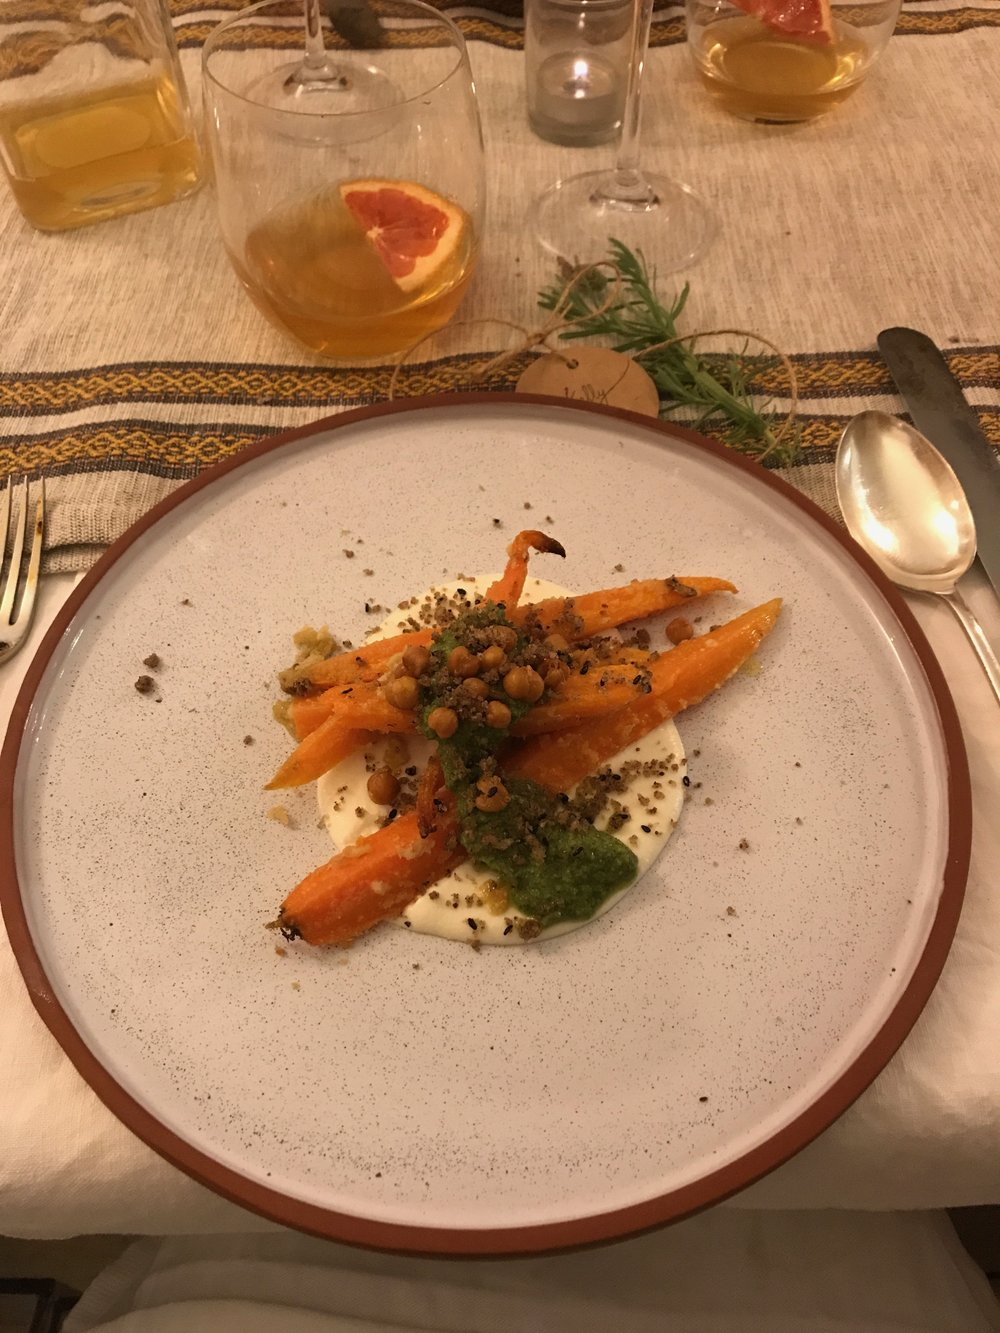 Roasted carrots and chickpeas with whipped feta